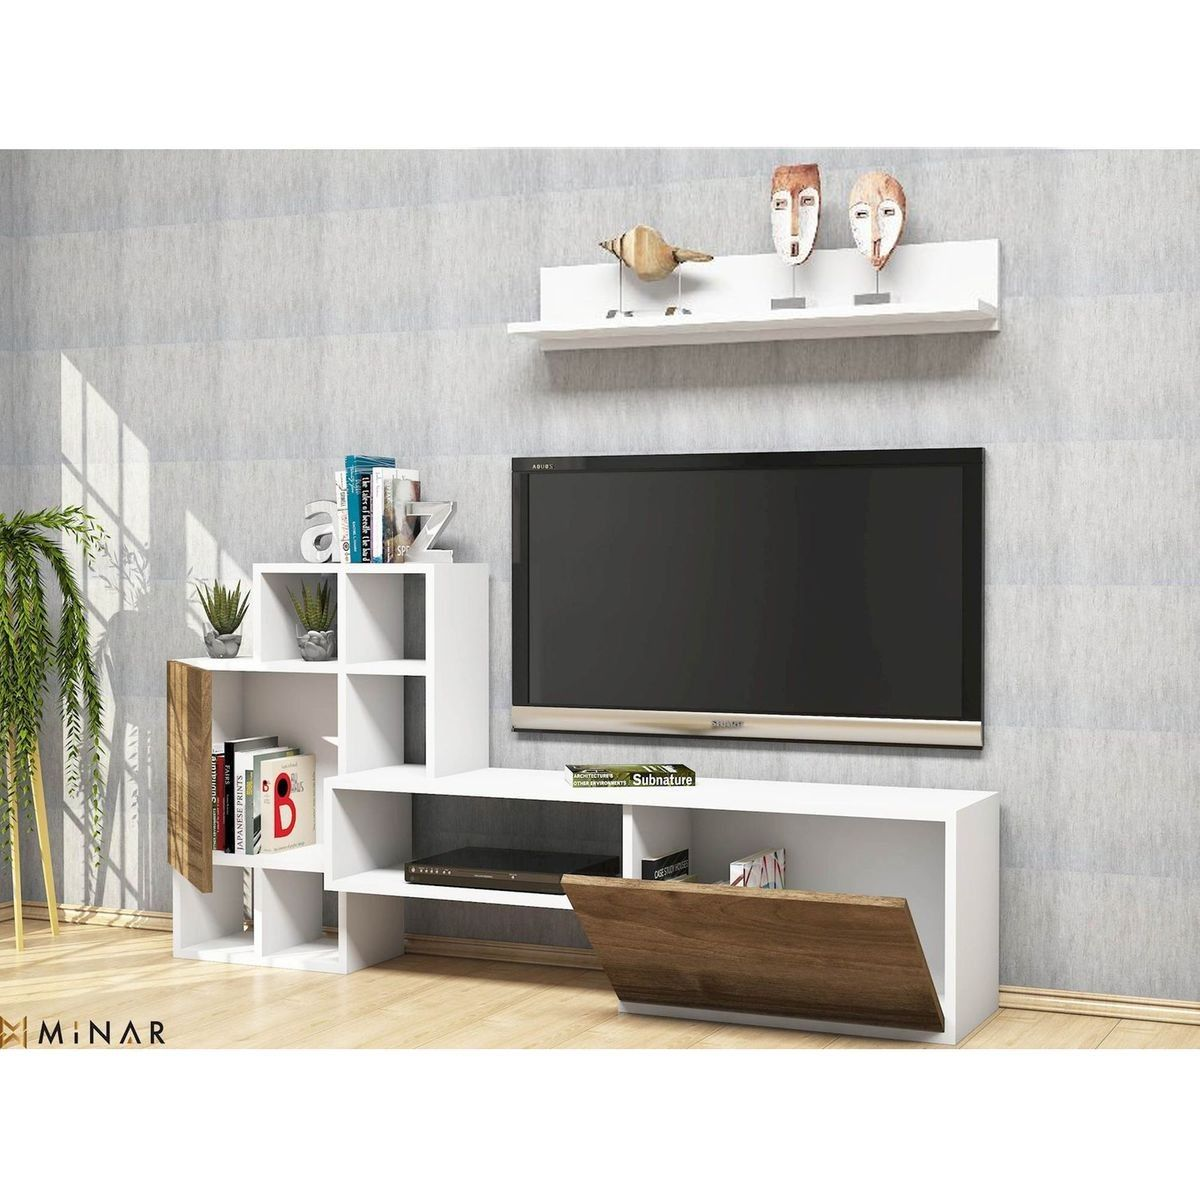 Meuble Tv Avec Etagere Rinaldo 160 X 78 Cm Blanc Et Beige Taille Tu Entertainment Unit Tv Unit Design Storage Spaces